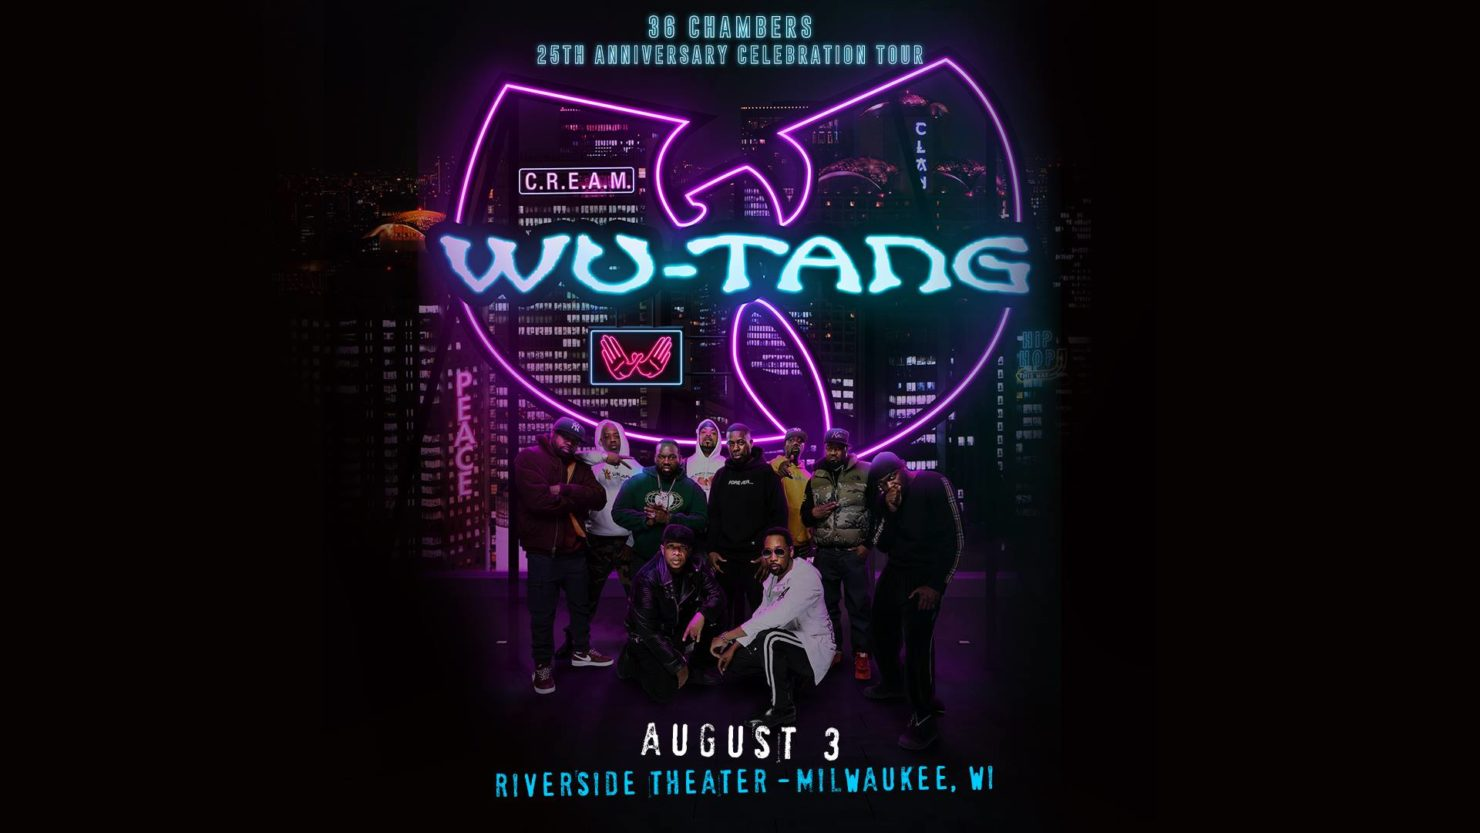 Wu-Tang 25th Anniversary Tour in Milwaukee